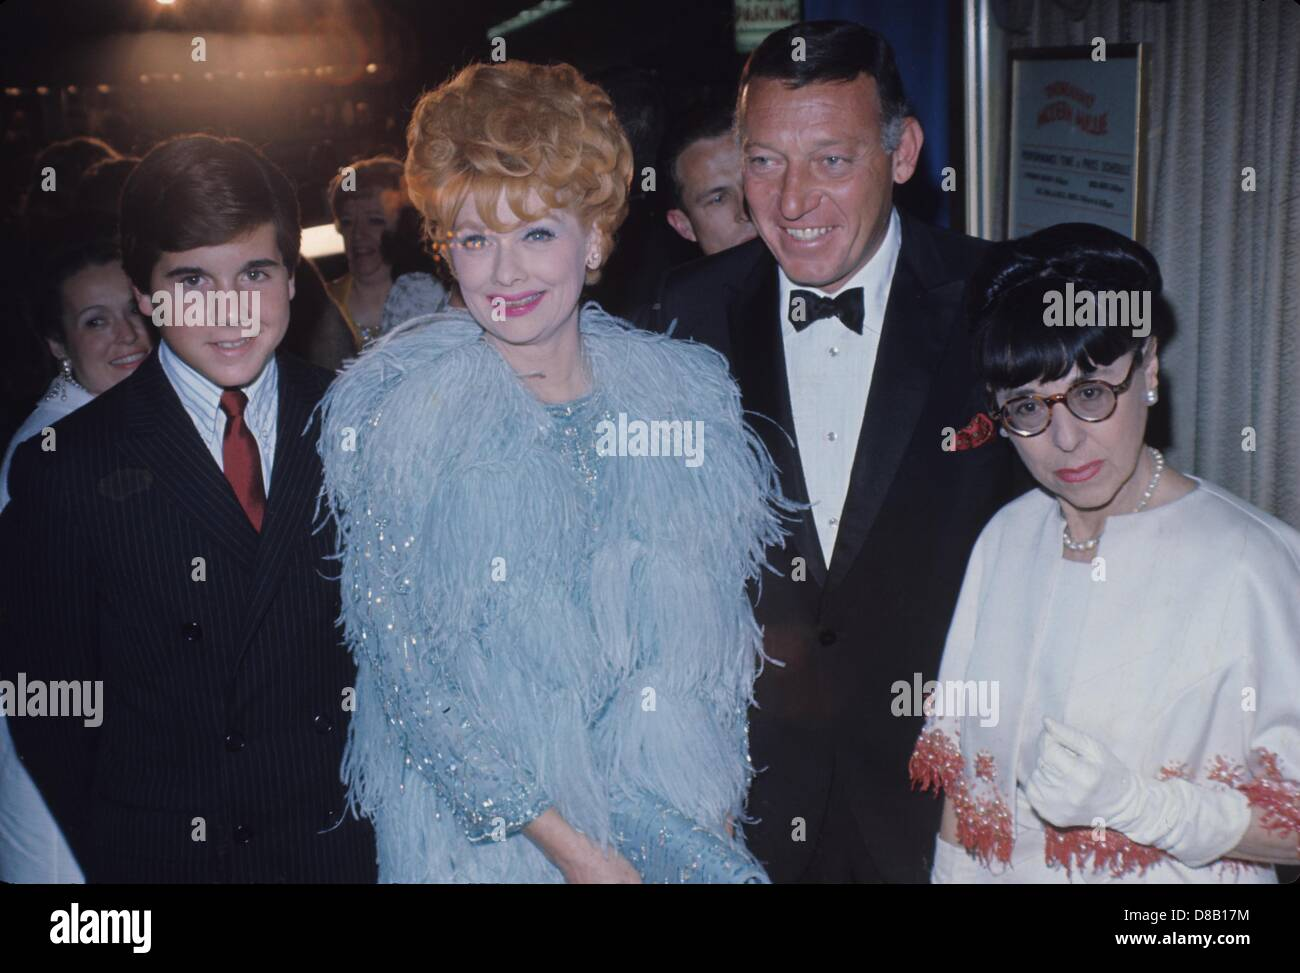 edith-head-with-lucille-ball-and-family-